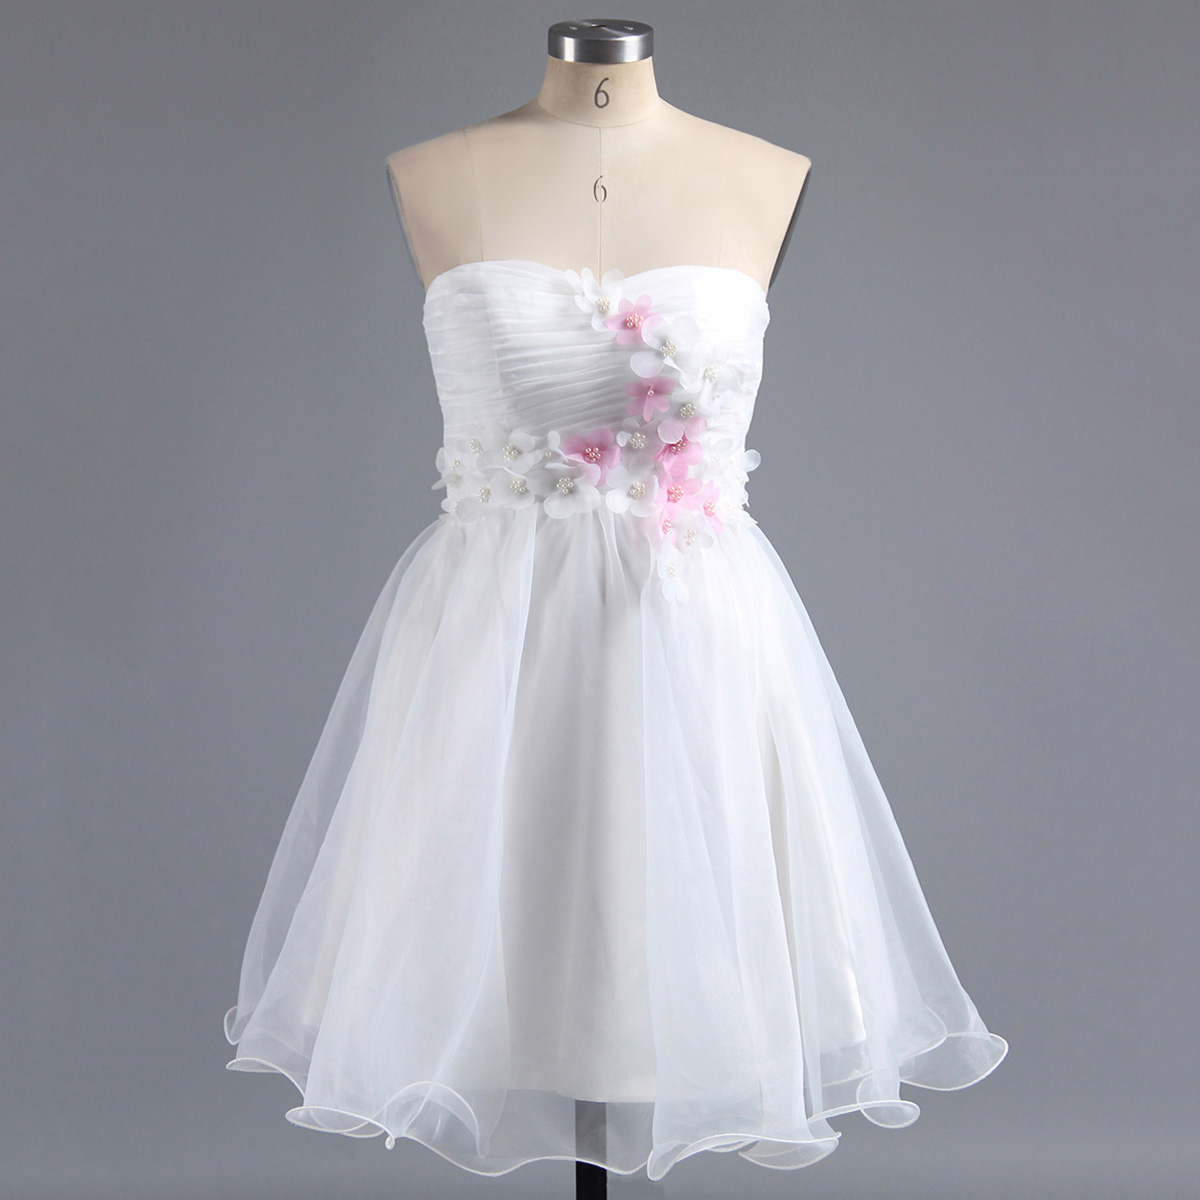 White Sweetheart Homecoming Dress with 3-D Appliques, Floral Short Homecoming Dress, Sweet Organza Homecoming Dress with a Ribbon, #02013244